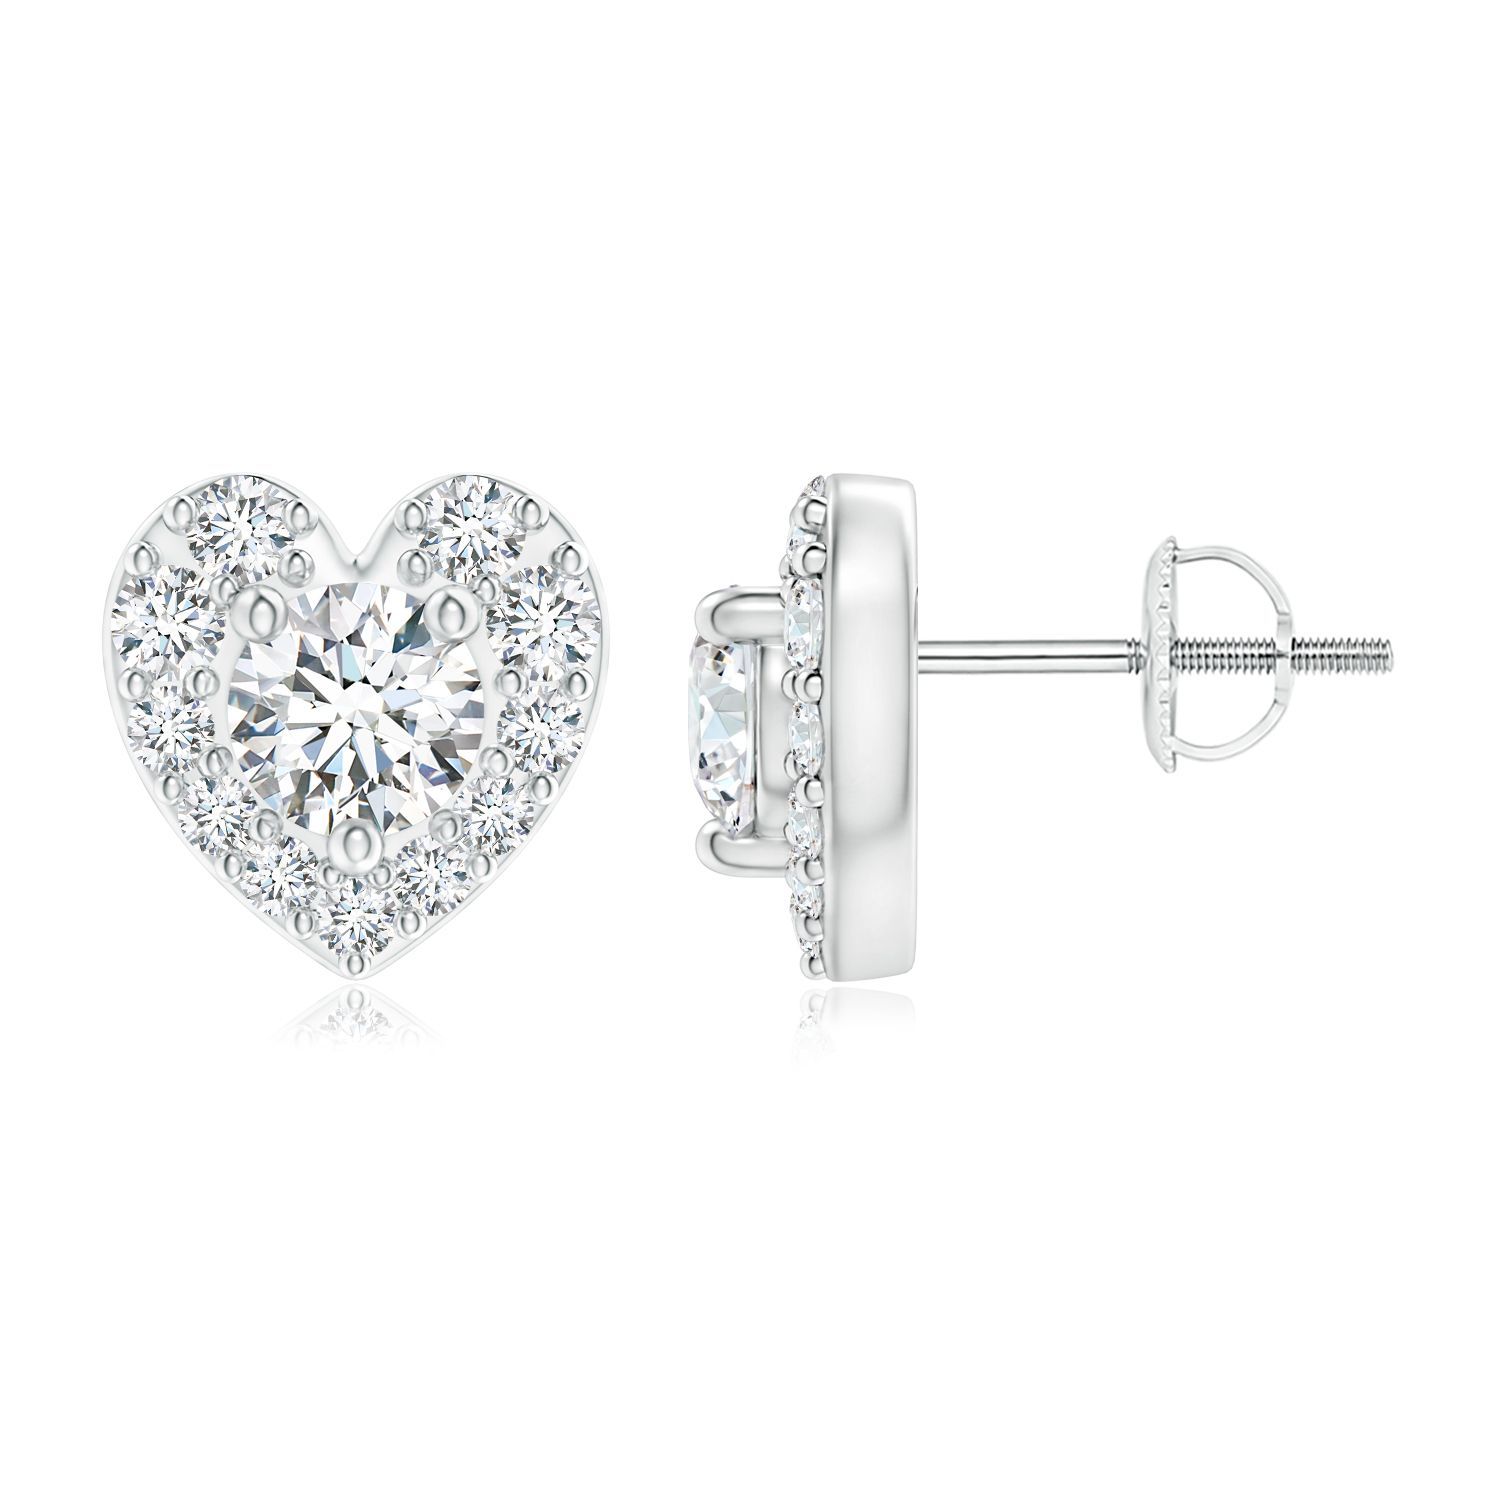 Angara Diamond Solitaire Earrings in White Gold